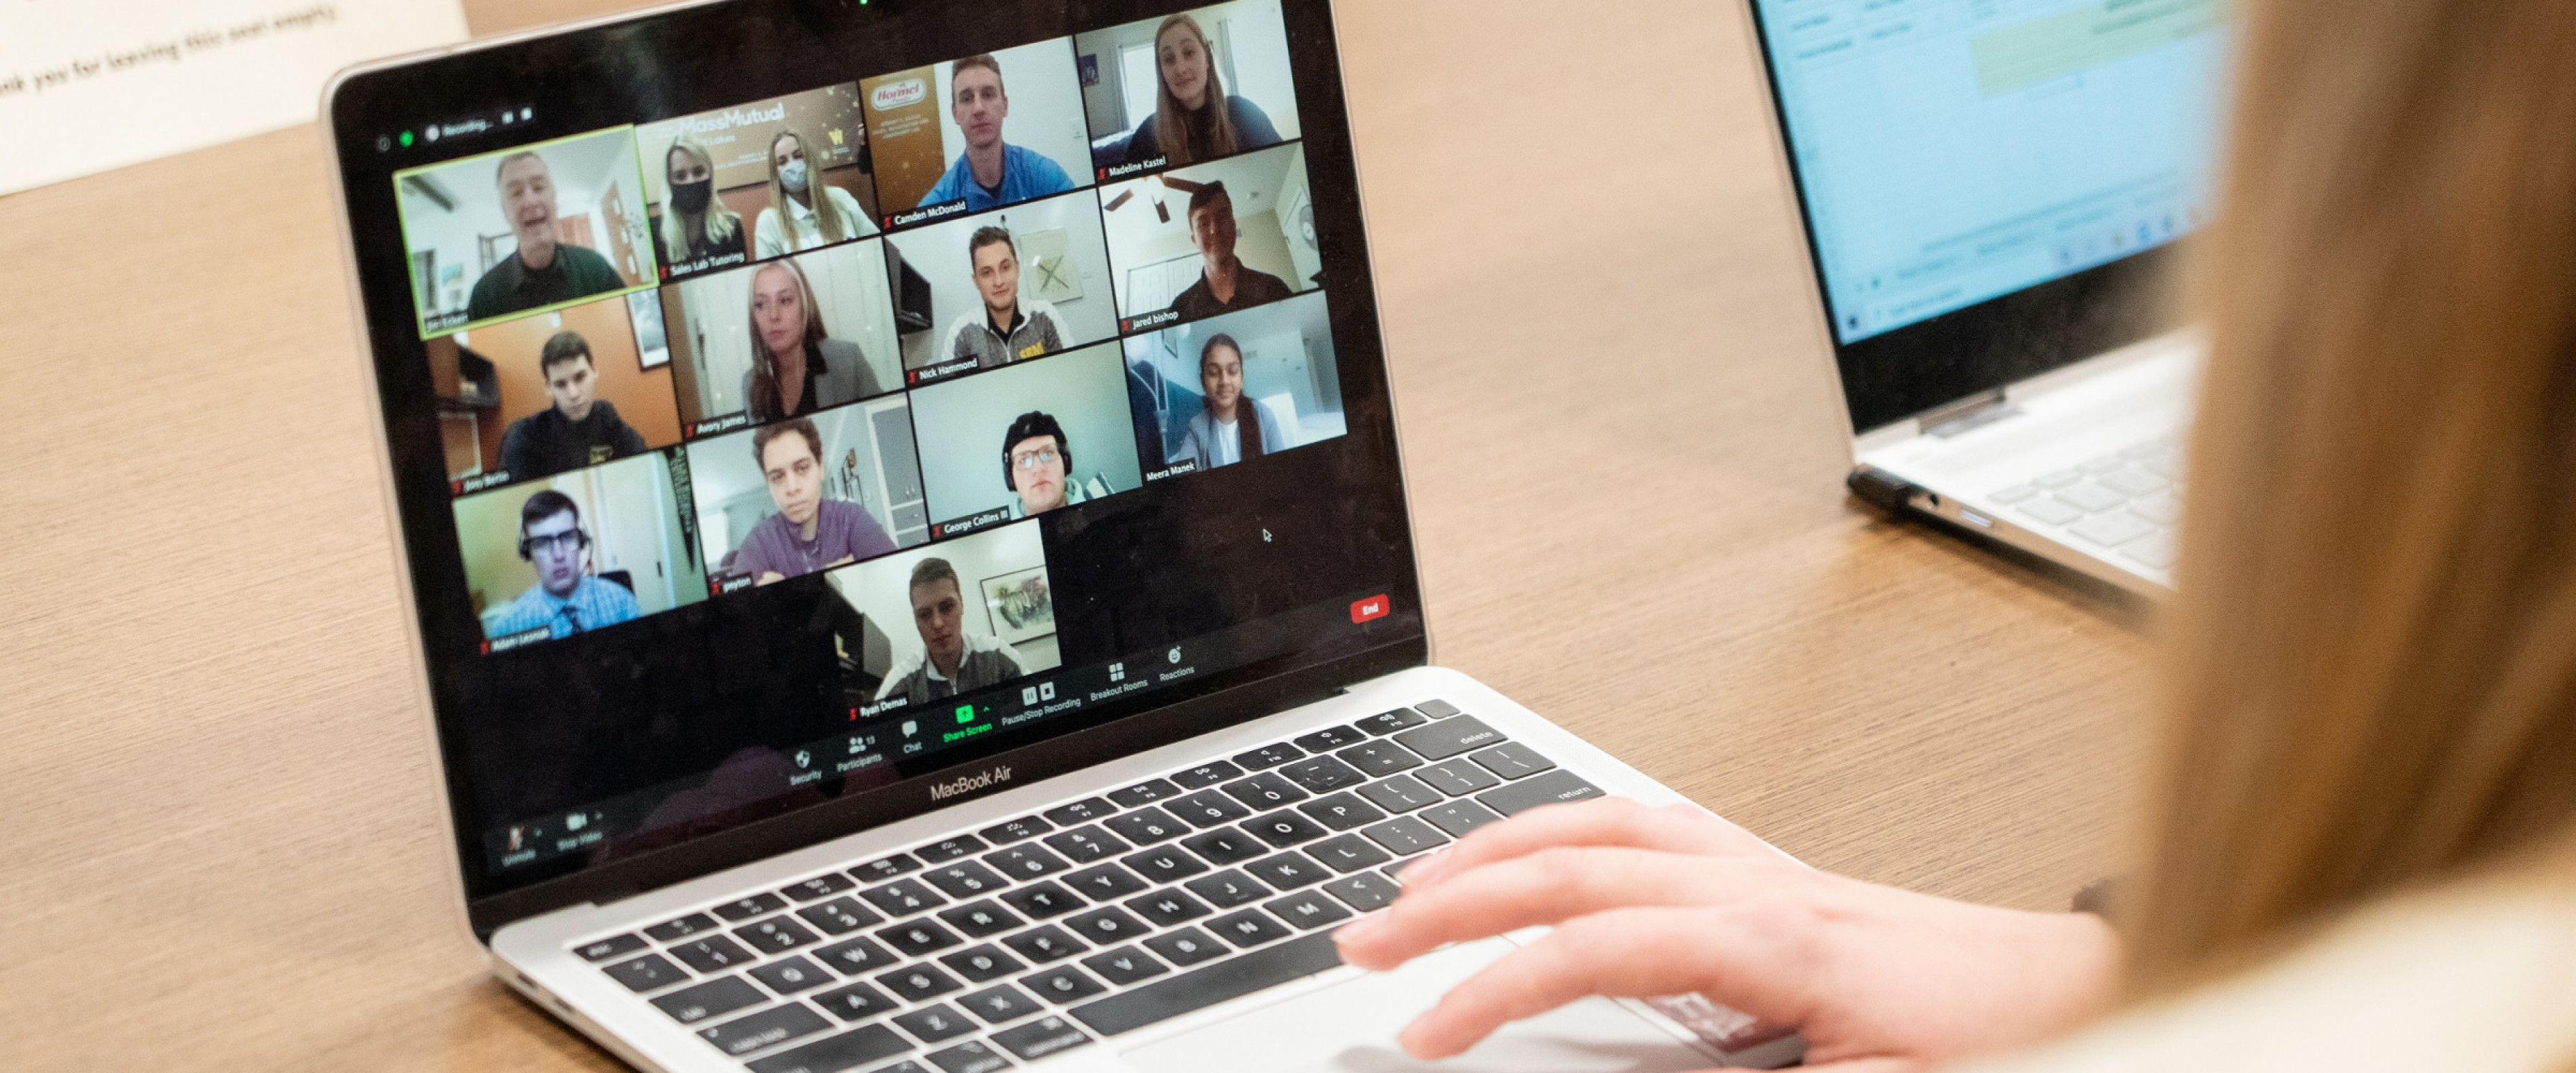 Woman is participating in a virtual meeting on her laptop